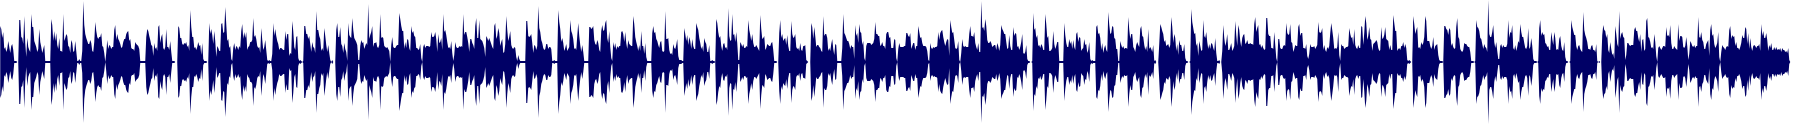 waveform of track #66481